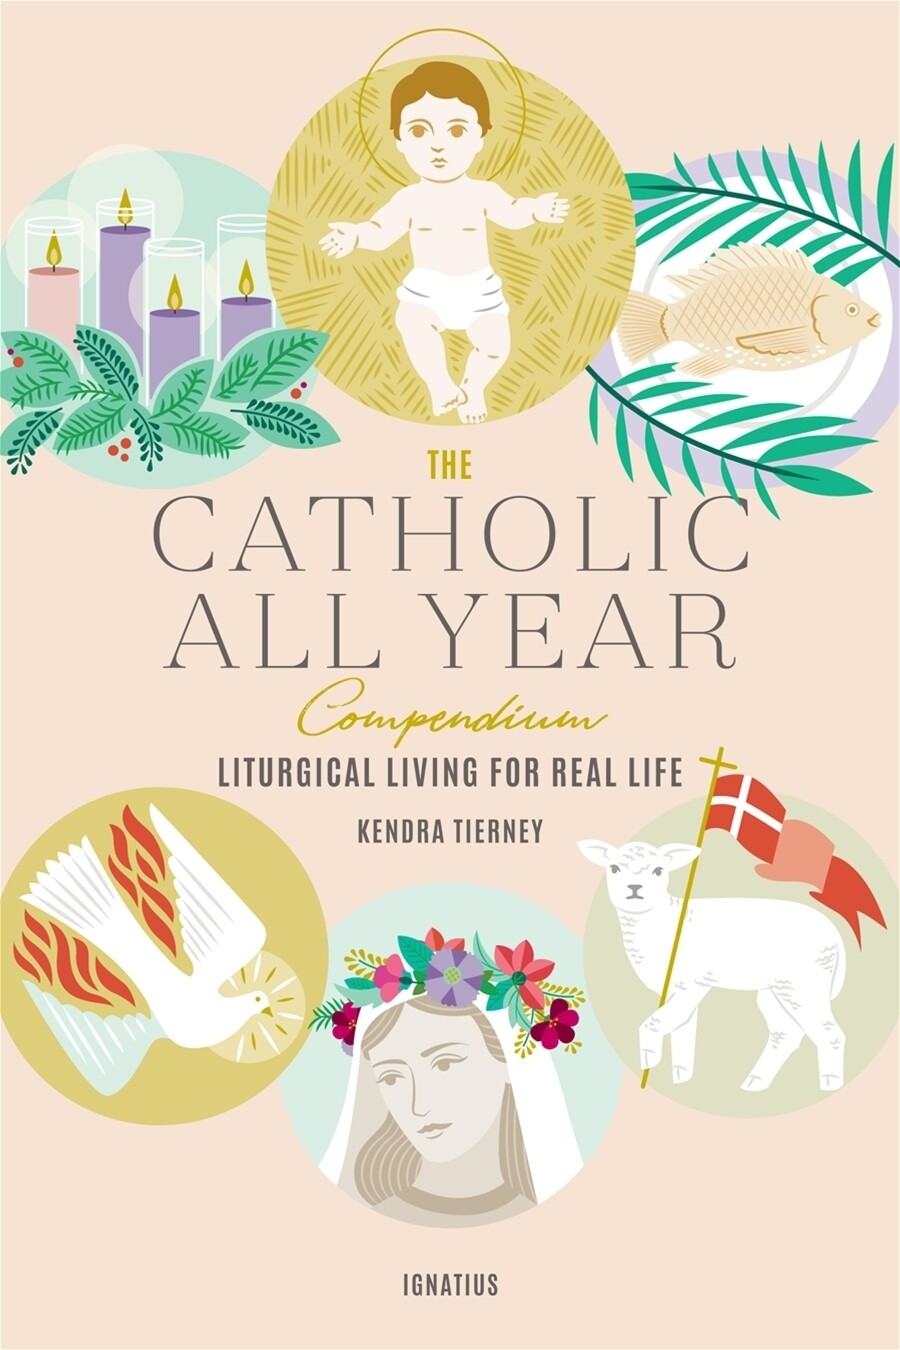 The Catholic All Year Compendium by Kendra Tierney